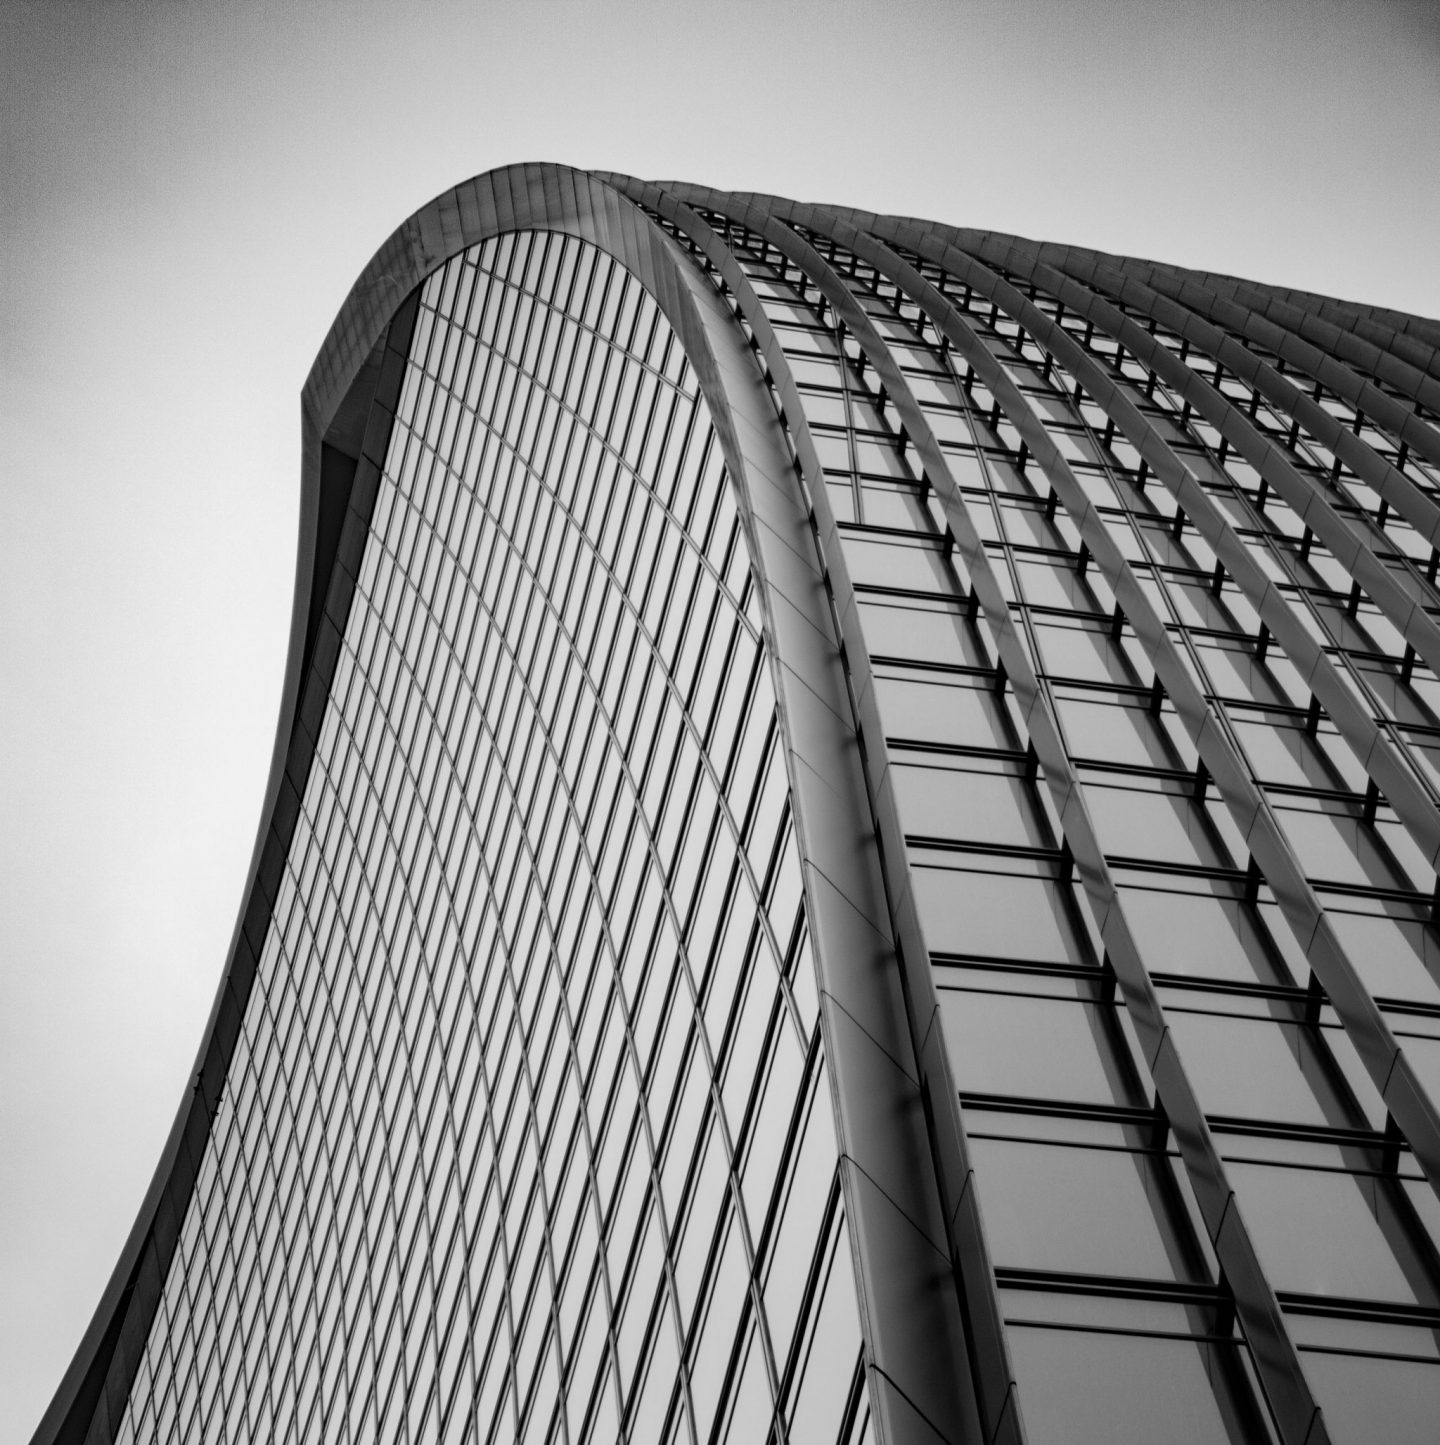 A different perspective of 20 Fenchurch Street